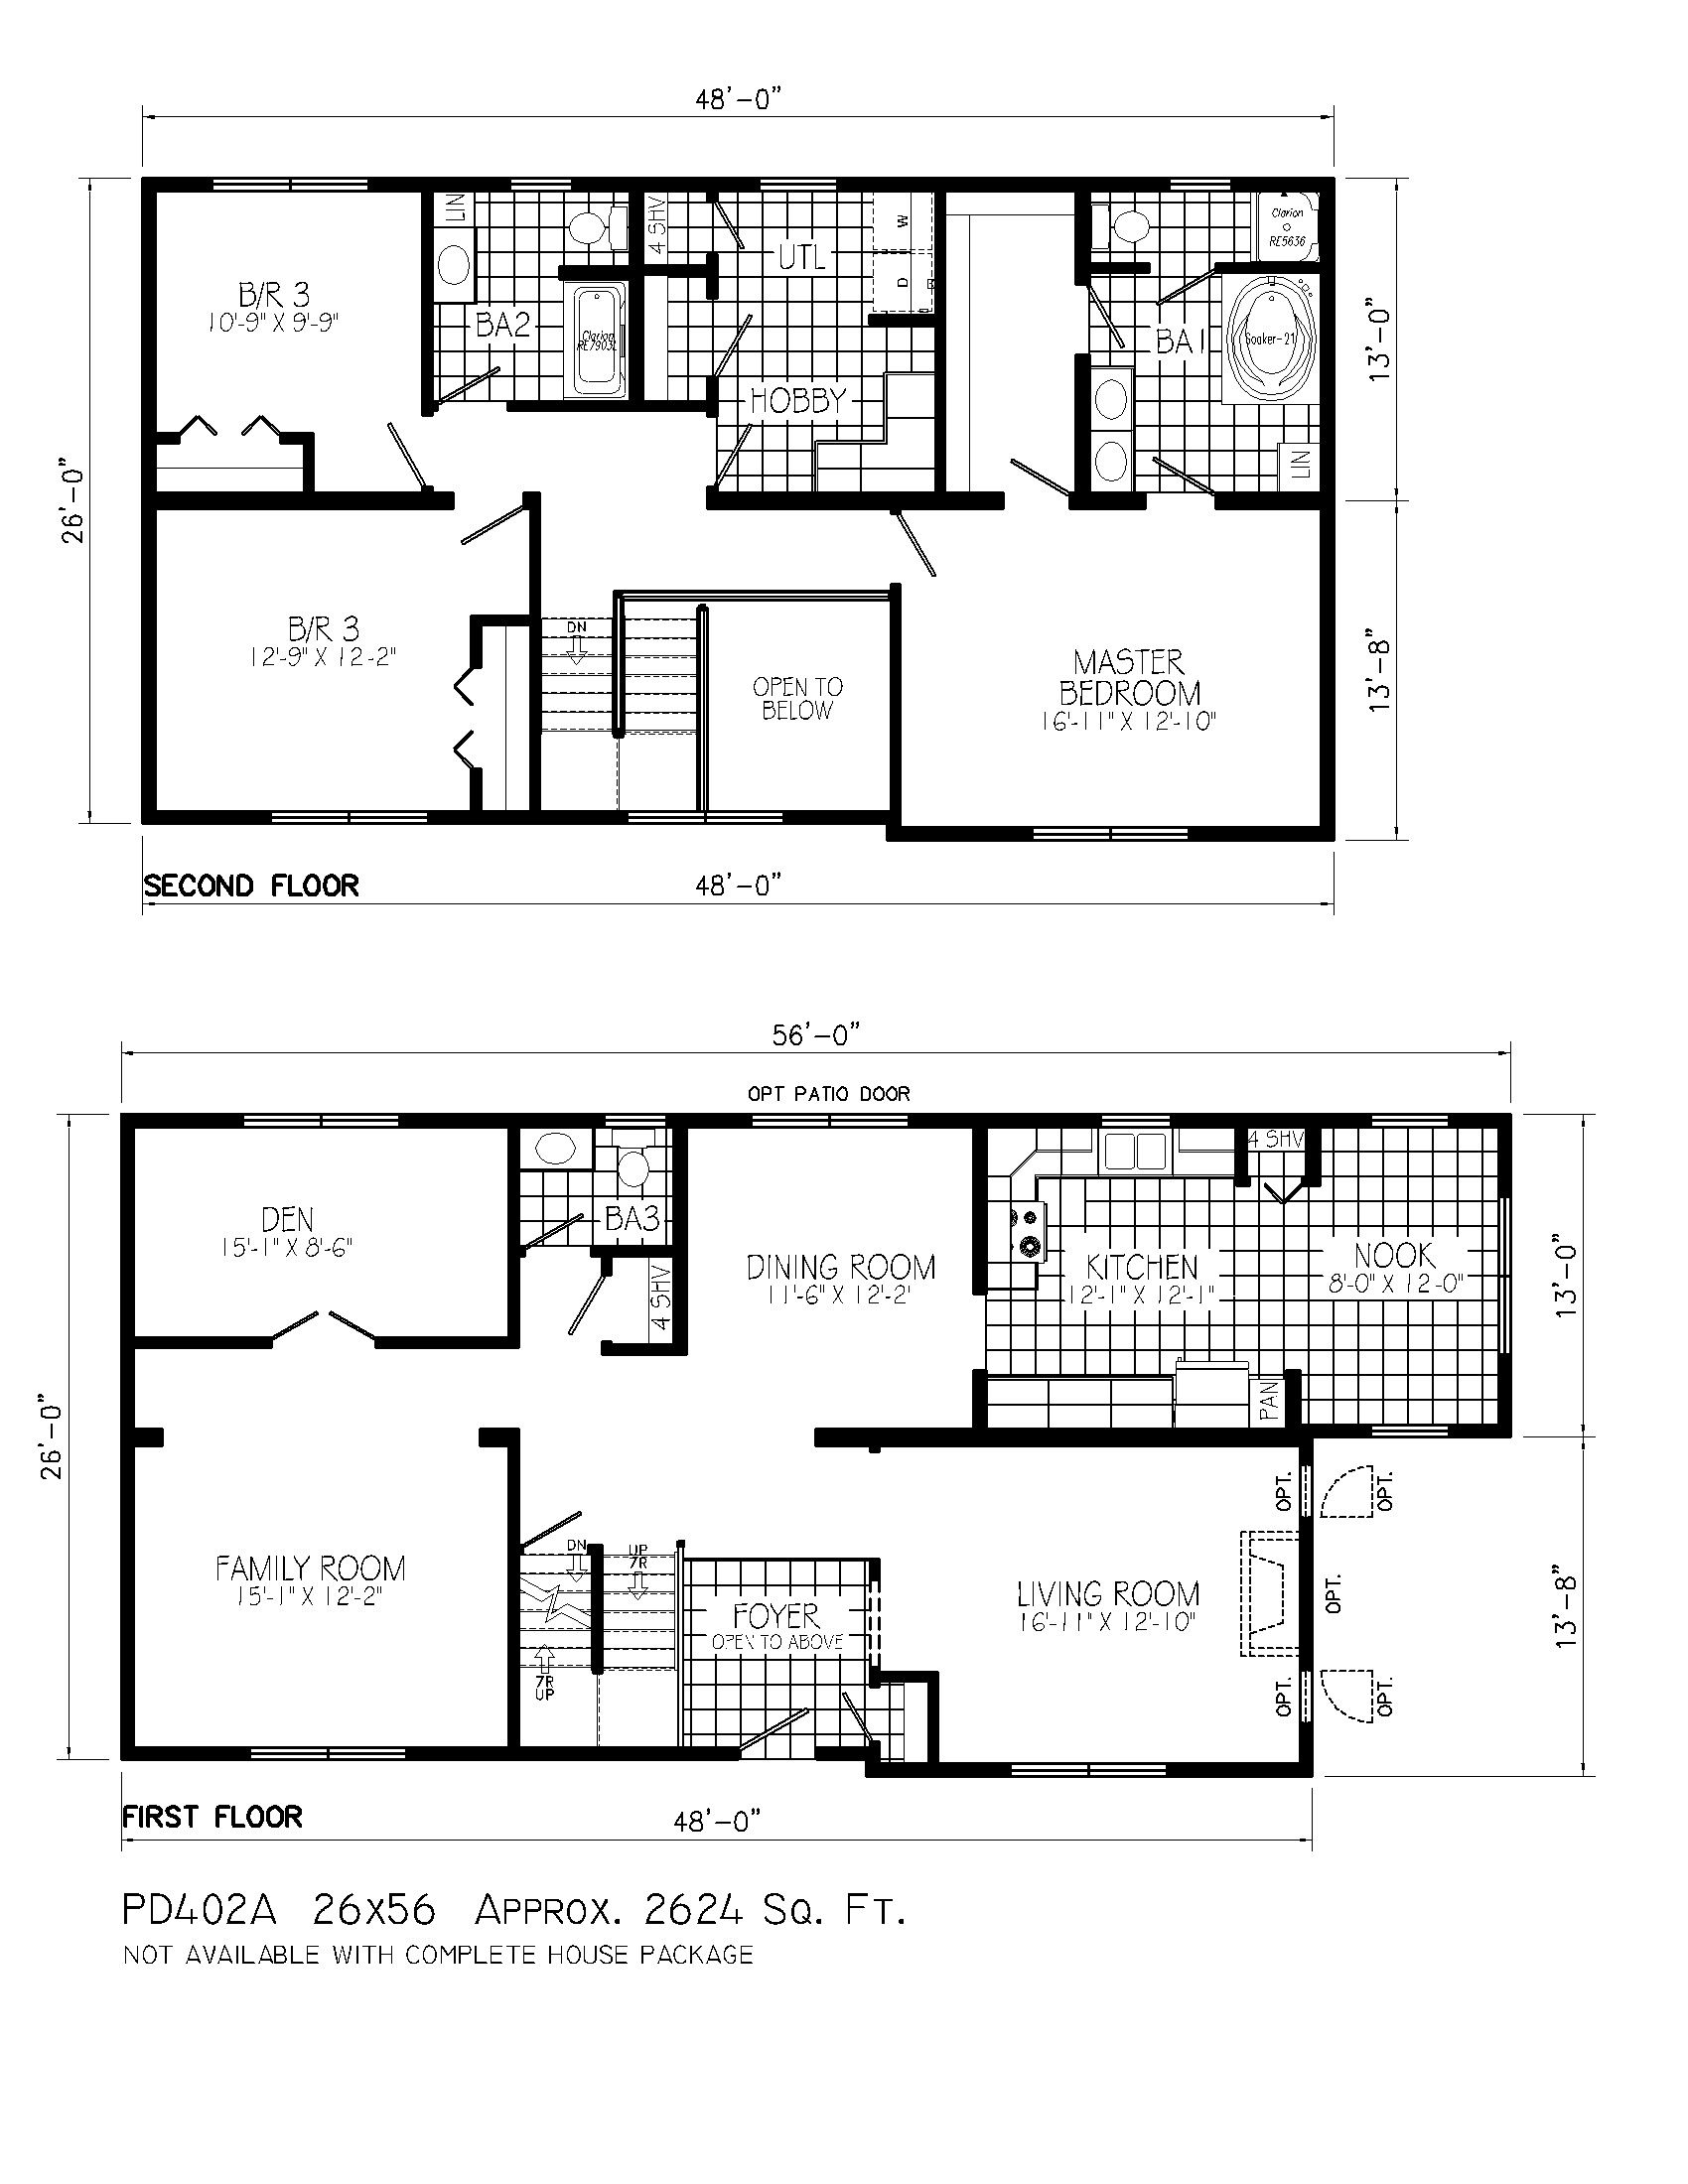 Small two story cabin floor plans with house under 1000 sq for Small two story cabin plans